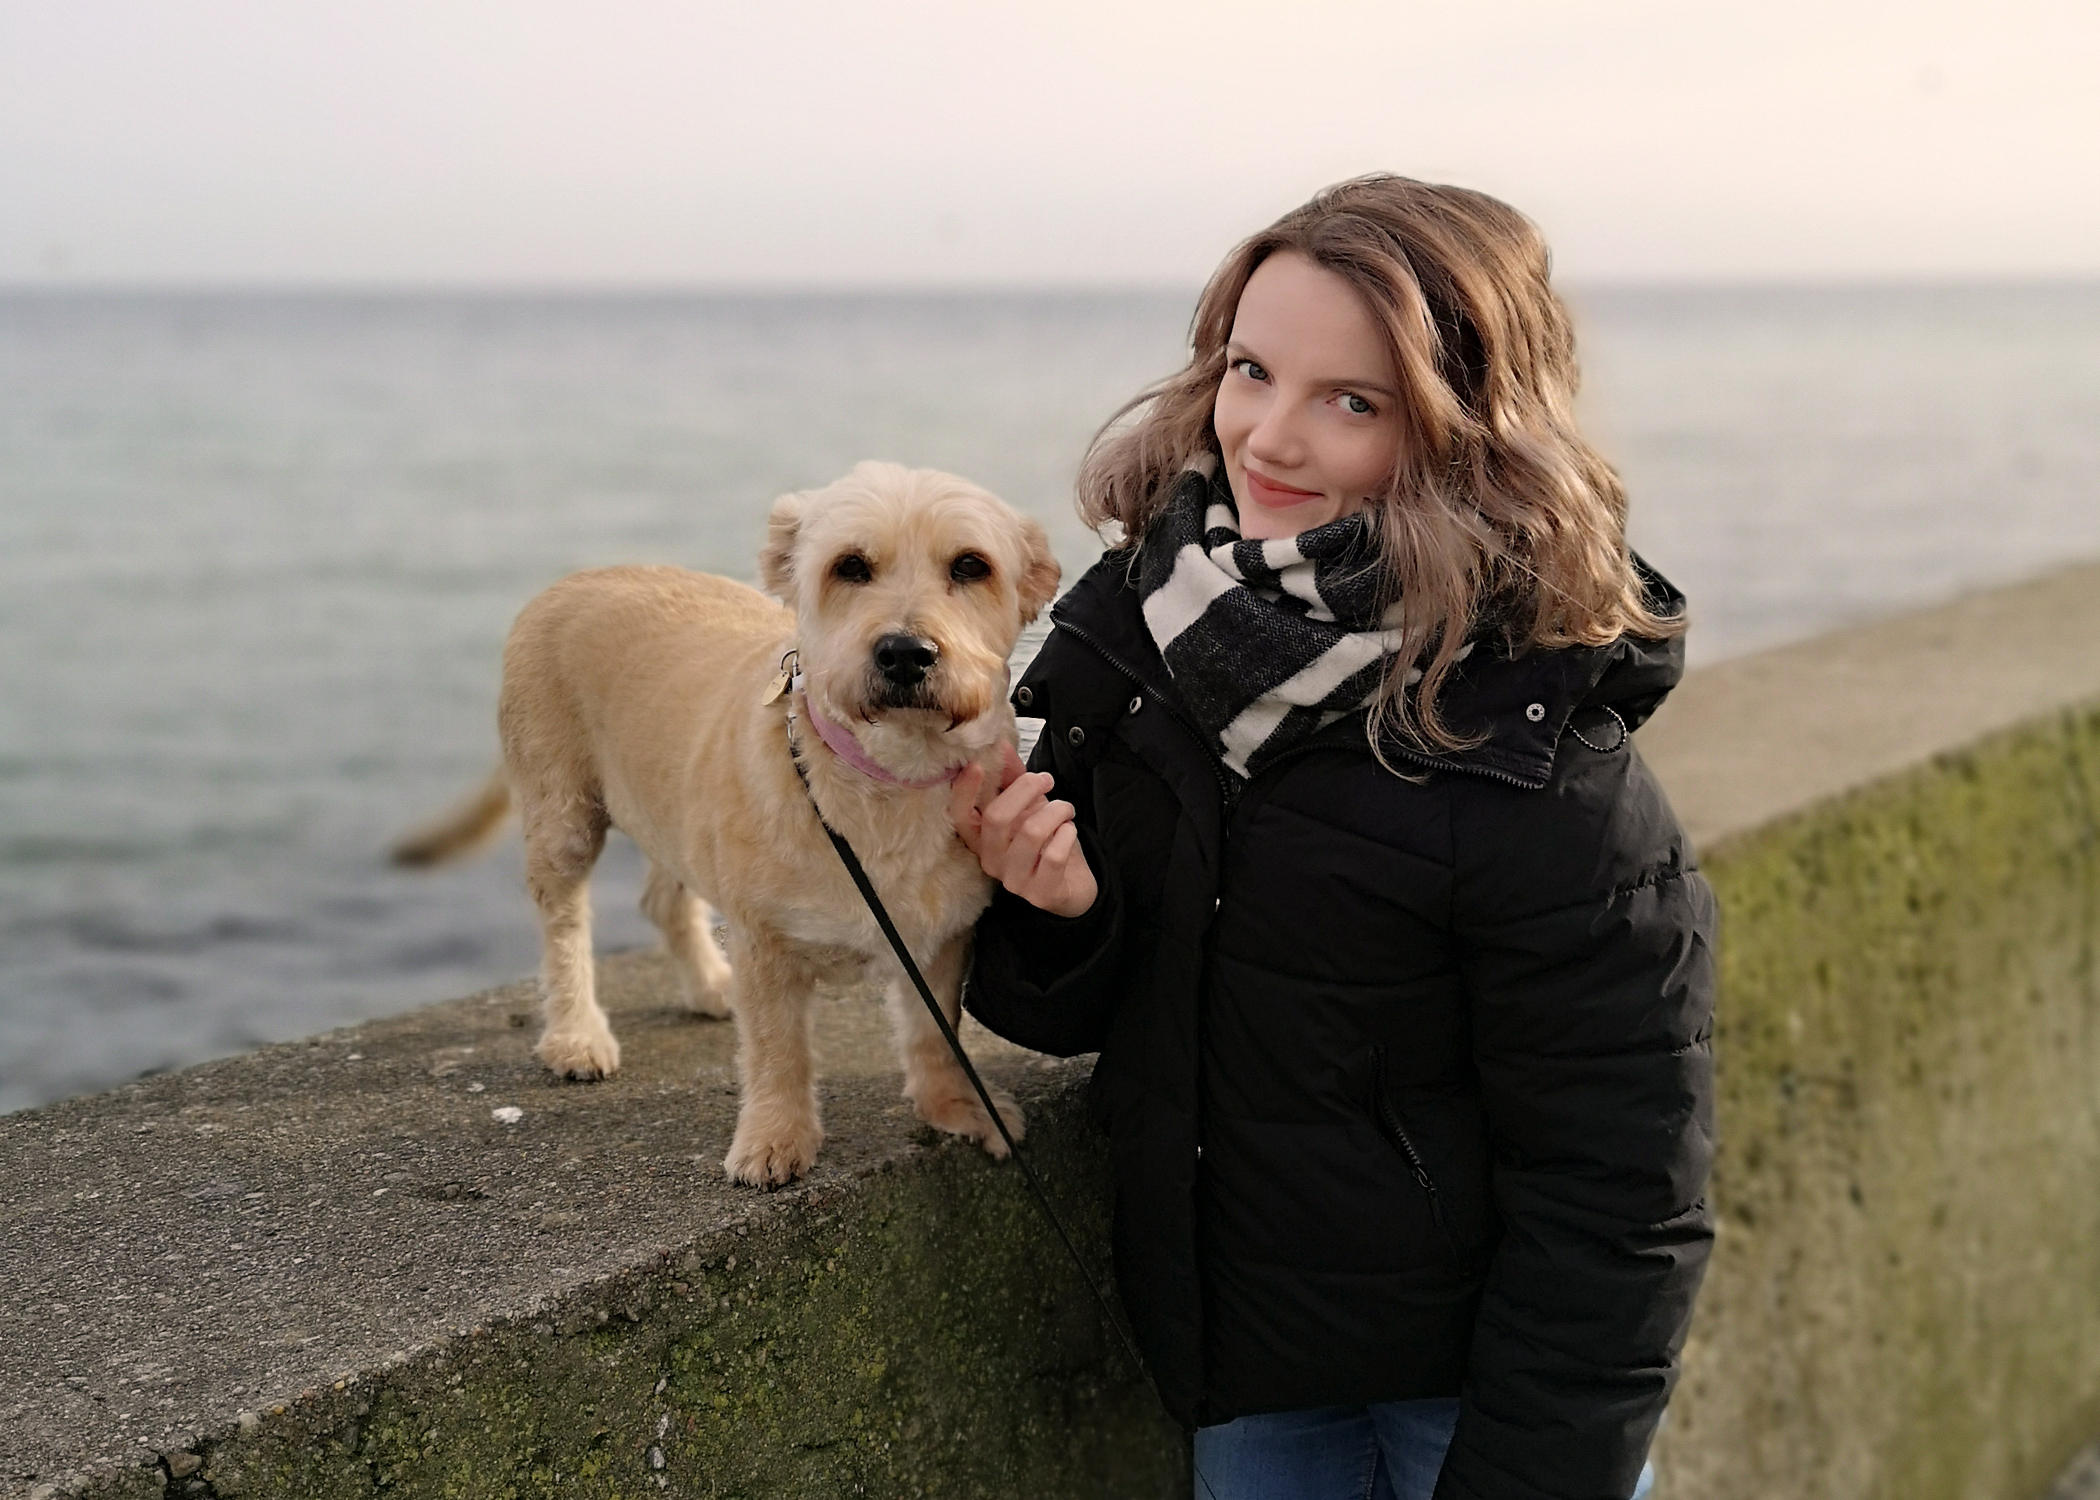 Tableau Public author Kasia Gasiewska-Holc with her dog Topica